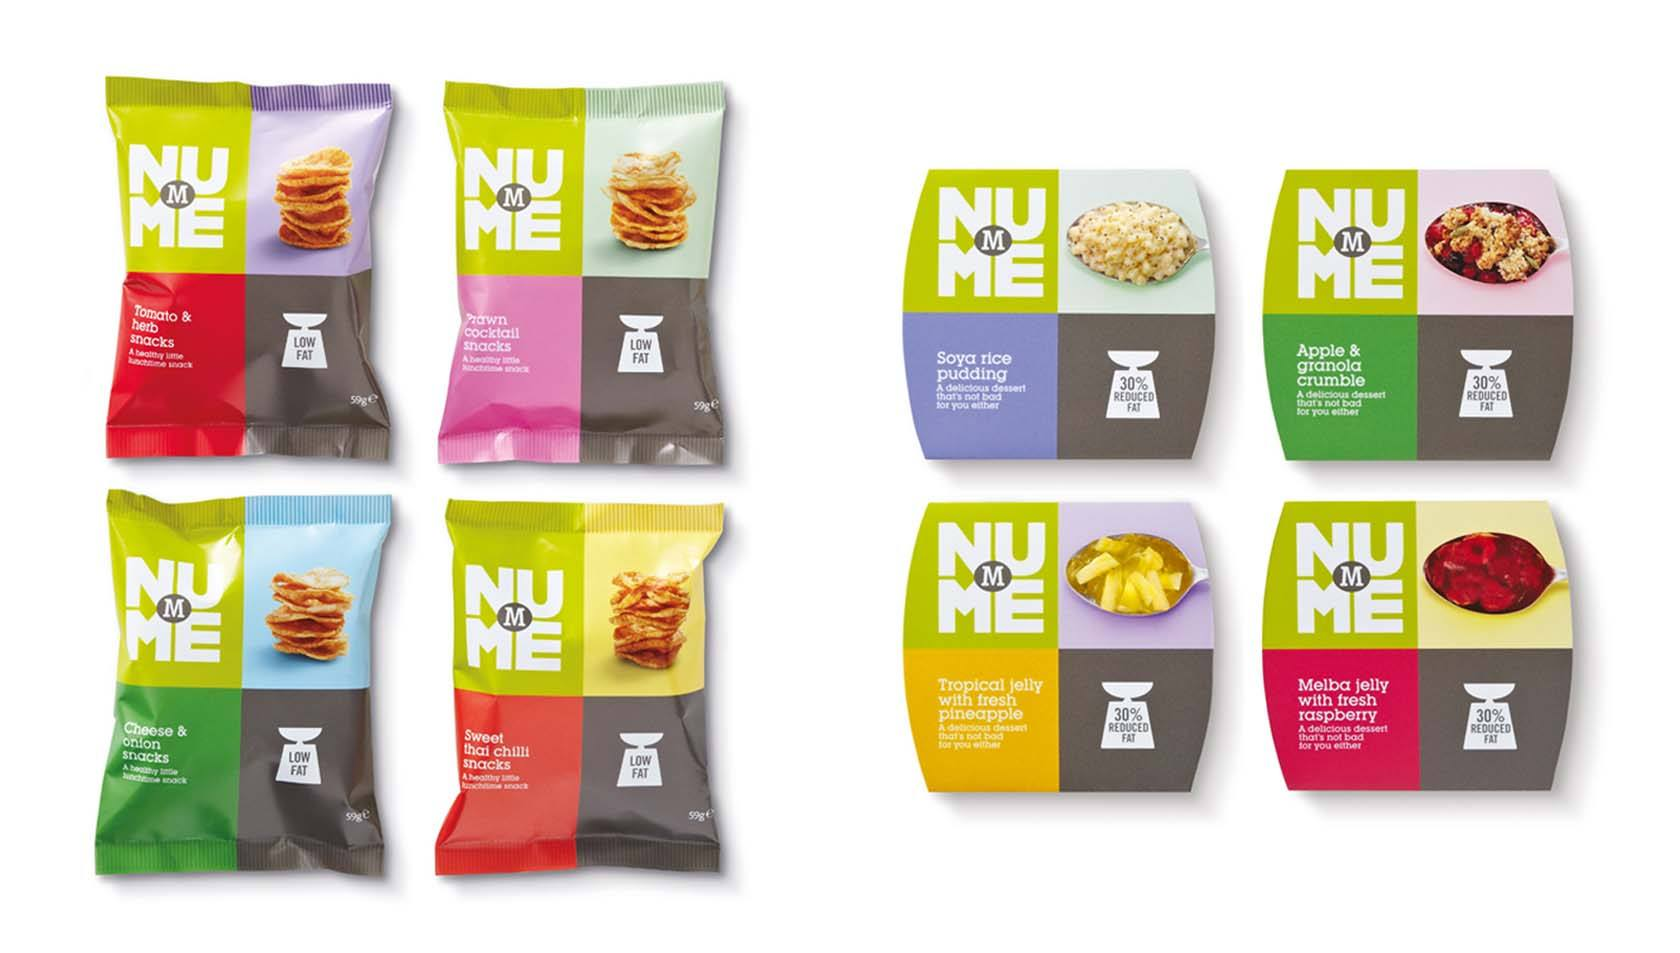 WMH-NUME-MORRISONS-CRISPS-READY-MEALS-WEB image